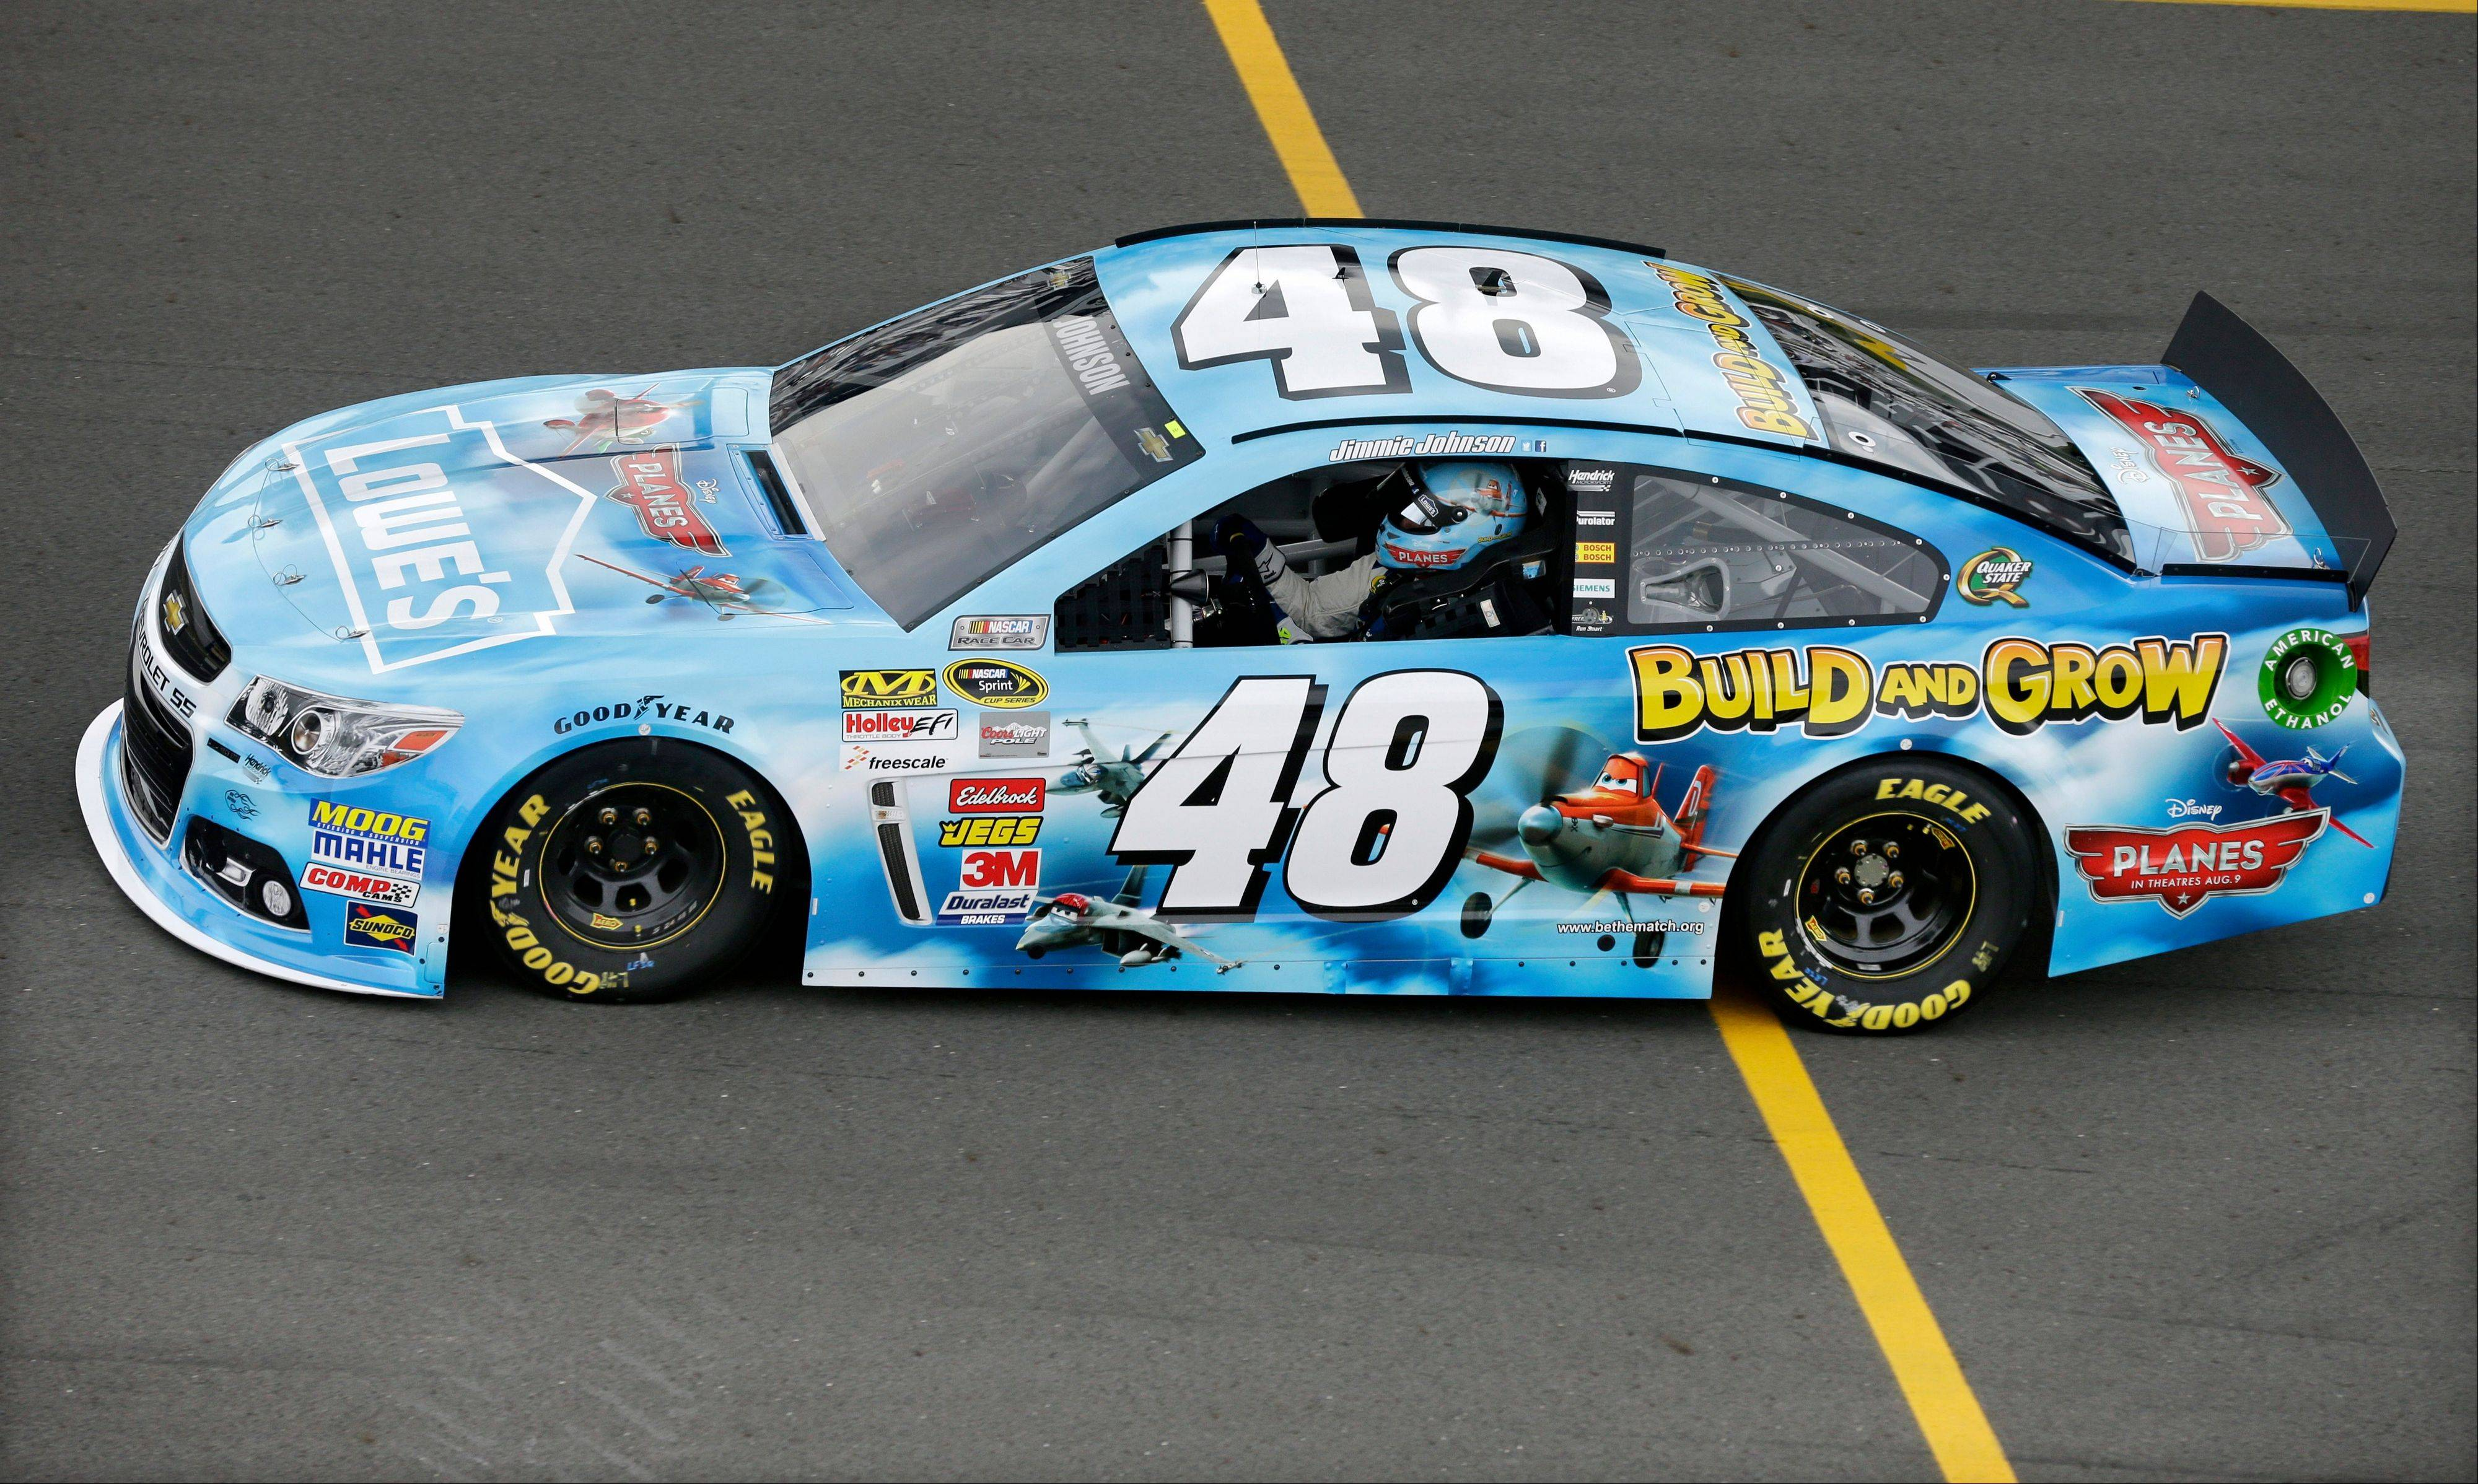 Jimmie Johnson drives into the pits after qualifying for Sunday's NASCAR Sprint Cup Series auto race, Friday Aug. 2, 2013, in Long Pond, Pa. Johnson qualified on the pole with a speed of 180.654 mph.